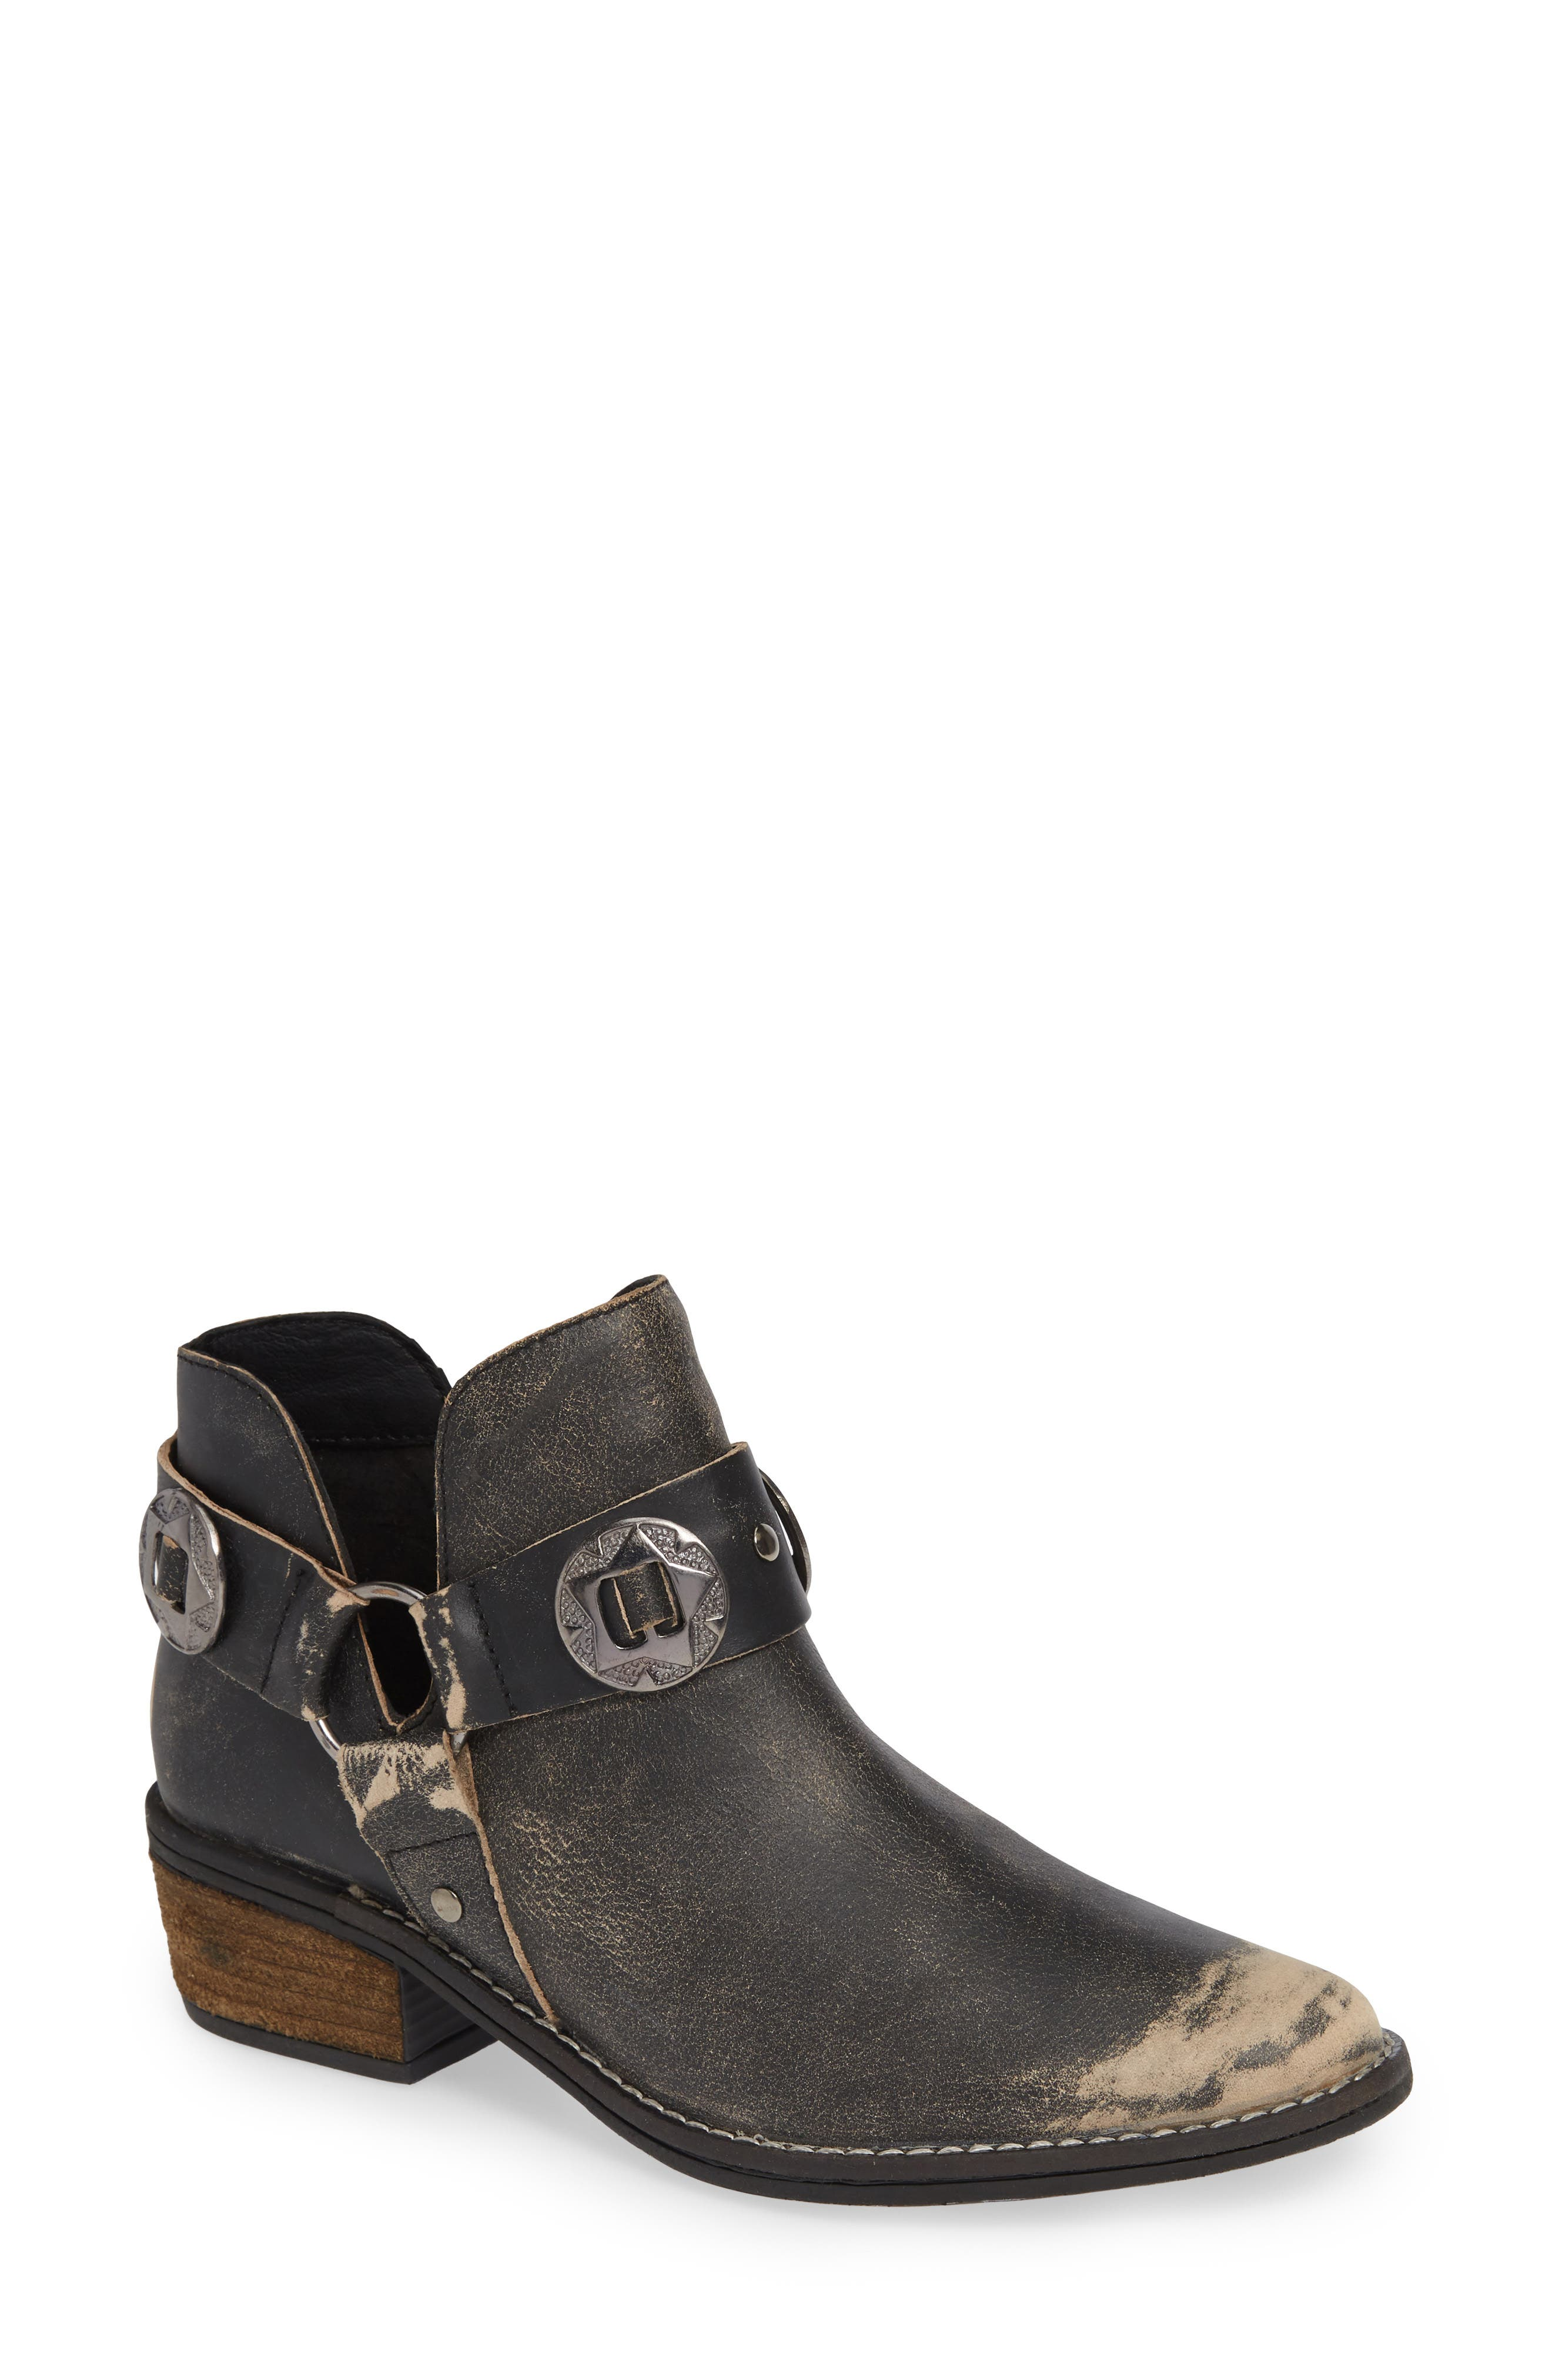 Chinese Laundry Austin Bootie, Black